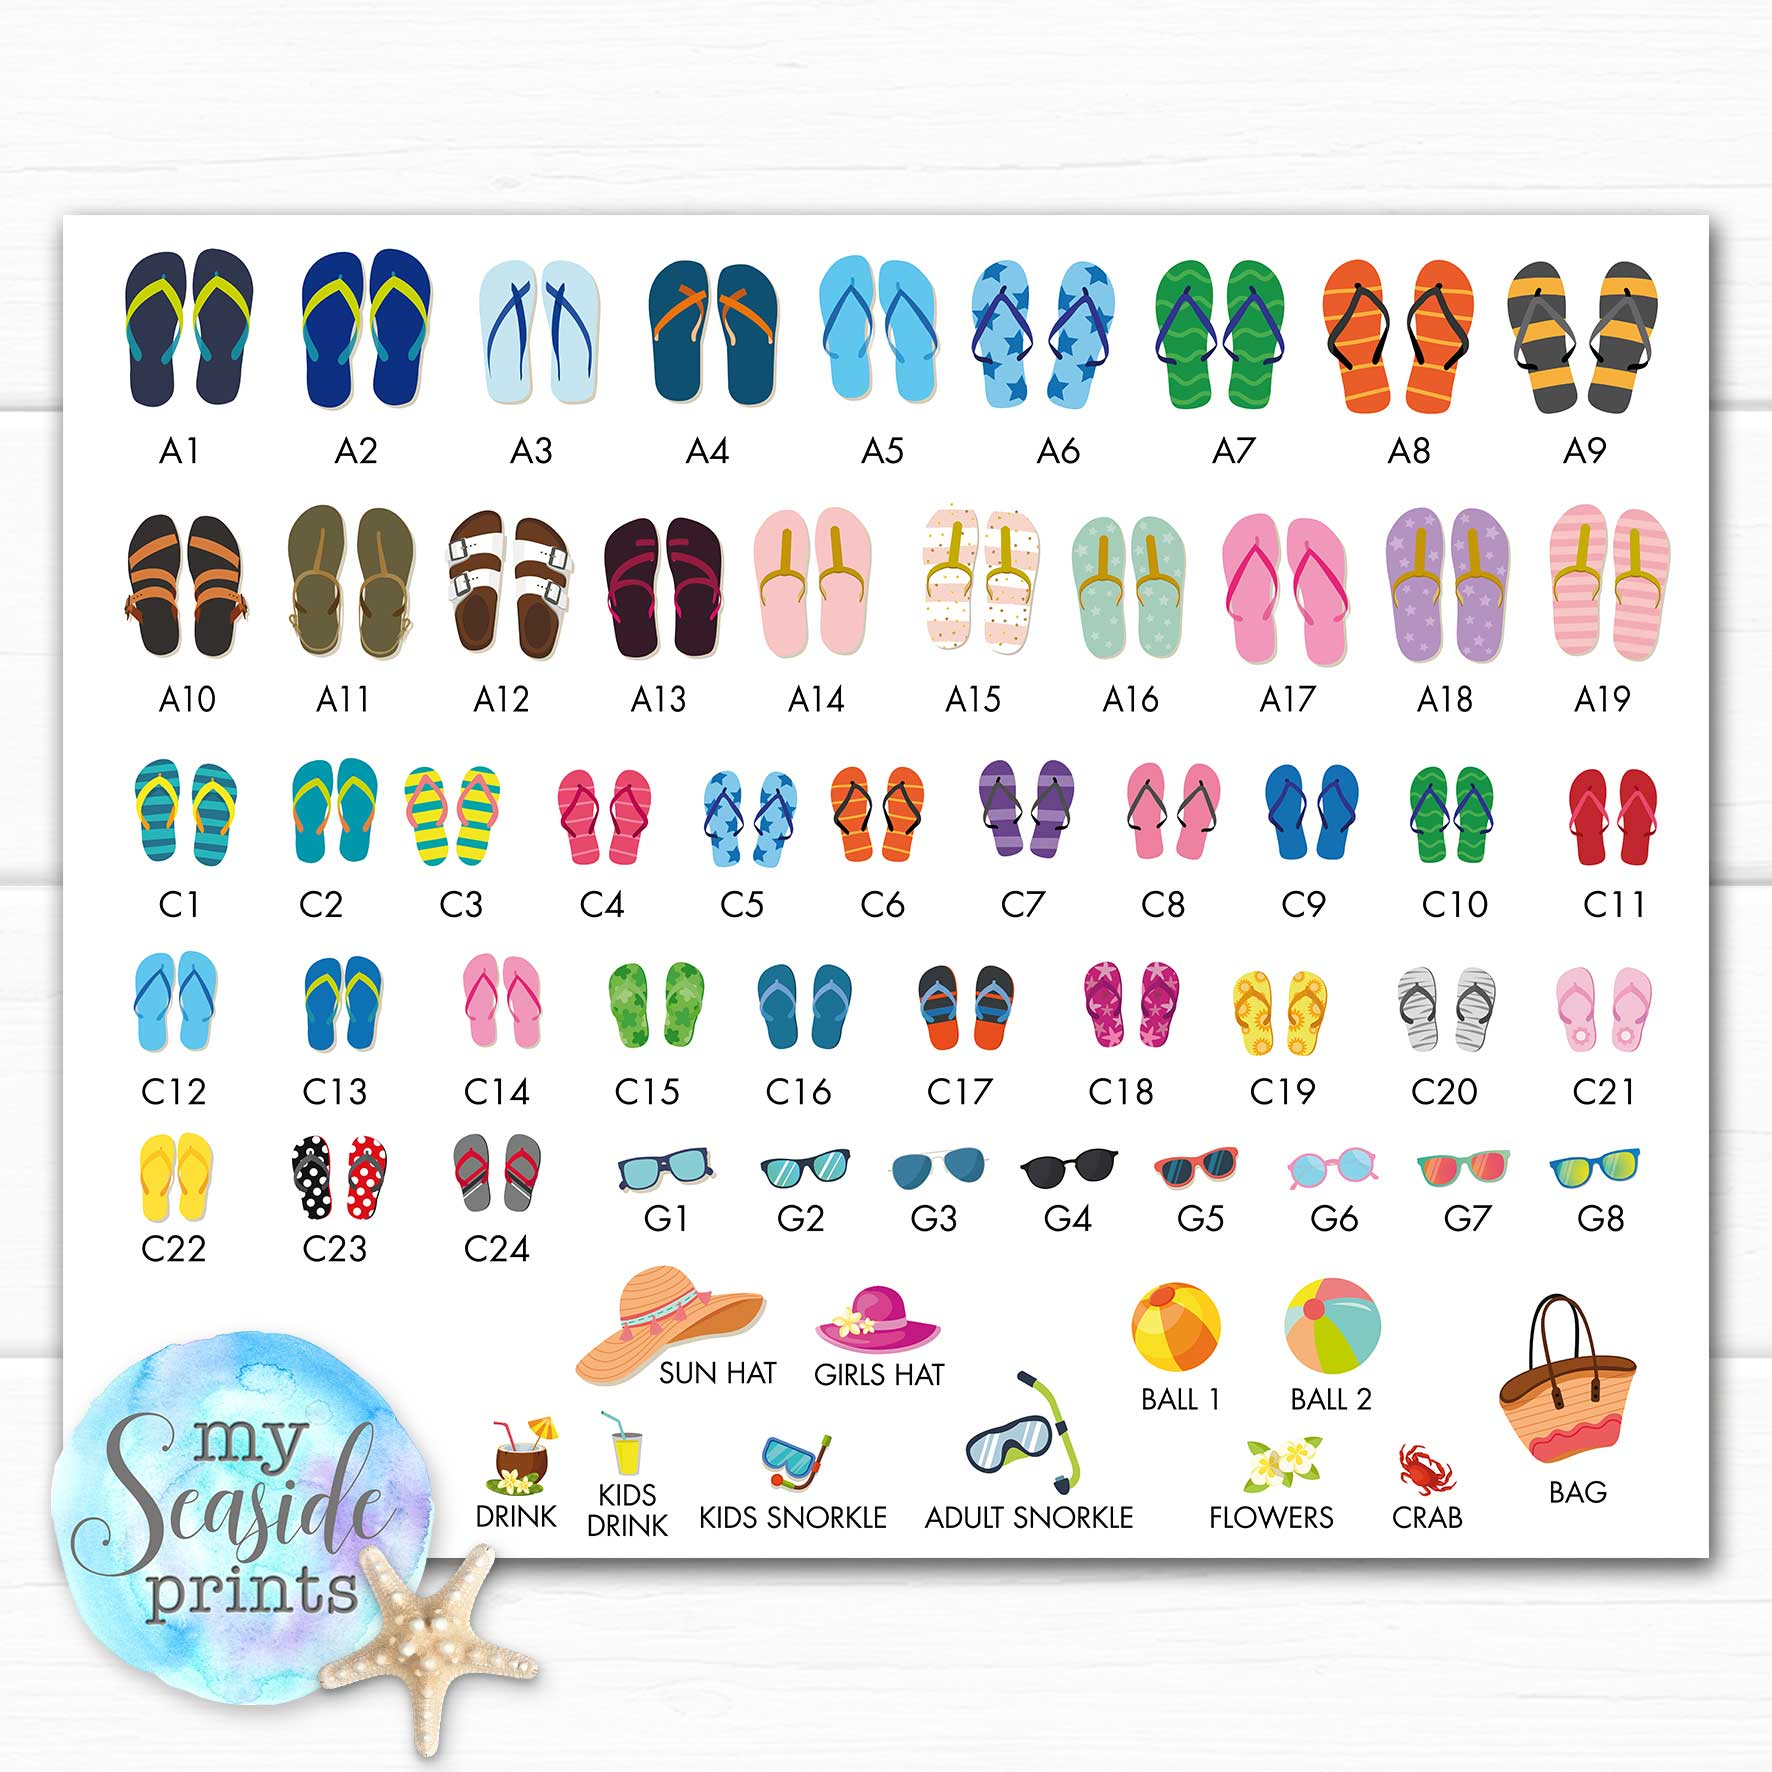 05a5db27e96ee contact sheet for flip flip choices for family flip flops personalised print